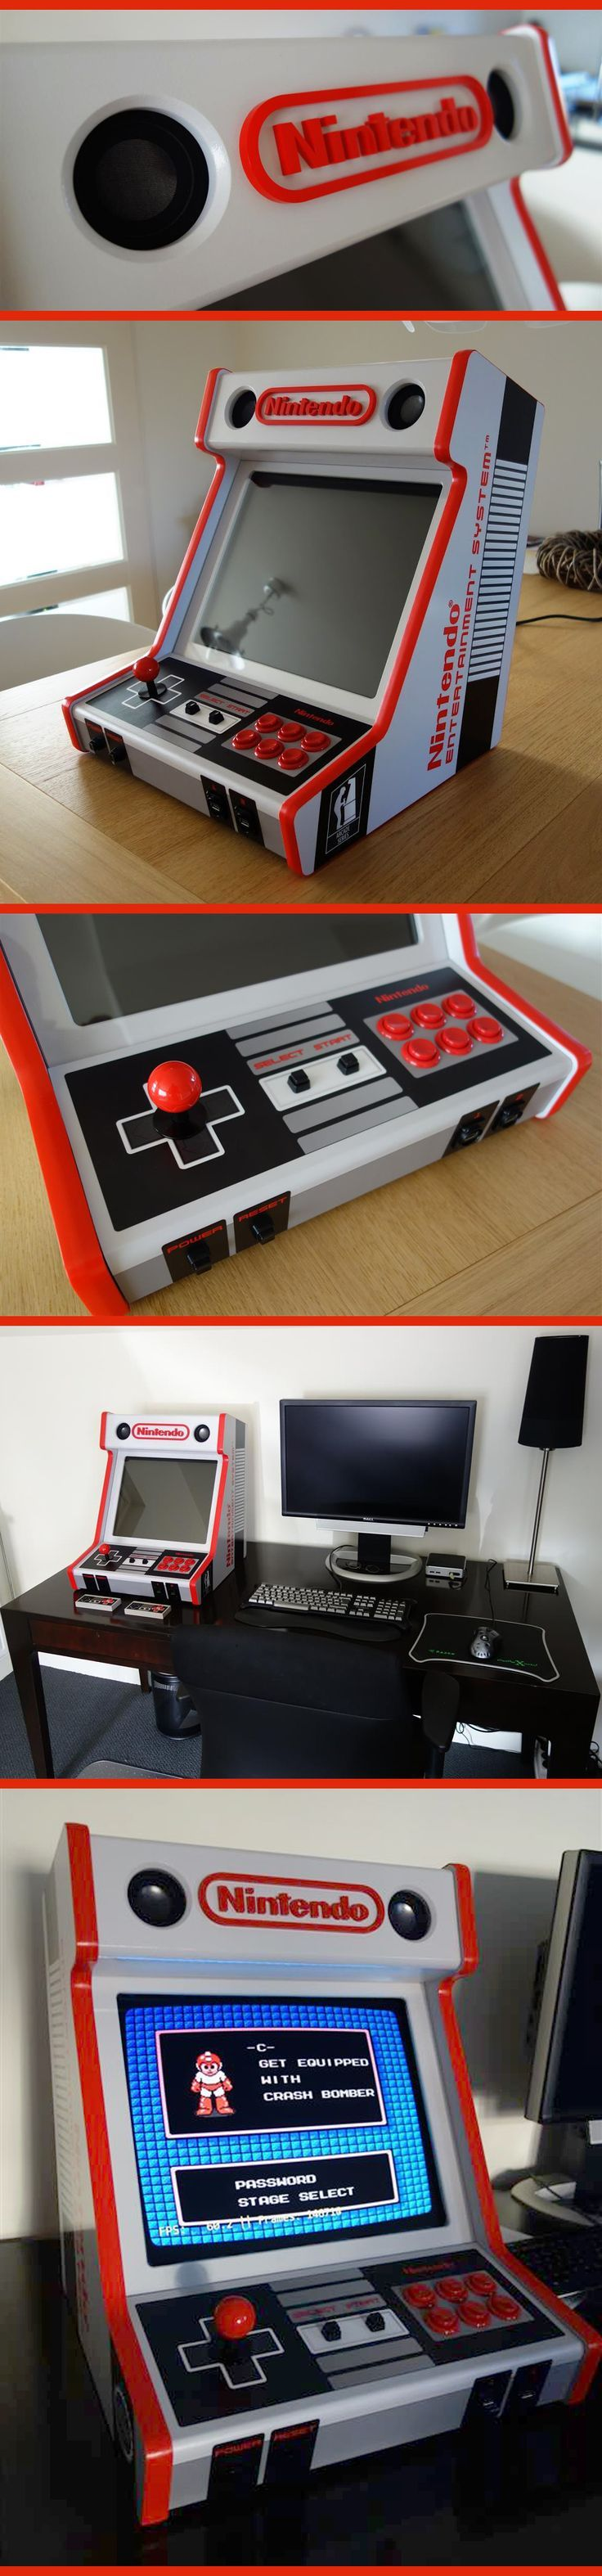 Custom Made NES Bartop Arcade Cabinet, super nostalgic retro Nintendo style via ArcadeControls forums user edekoning